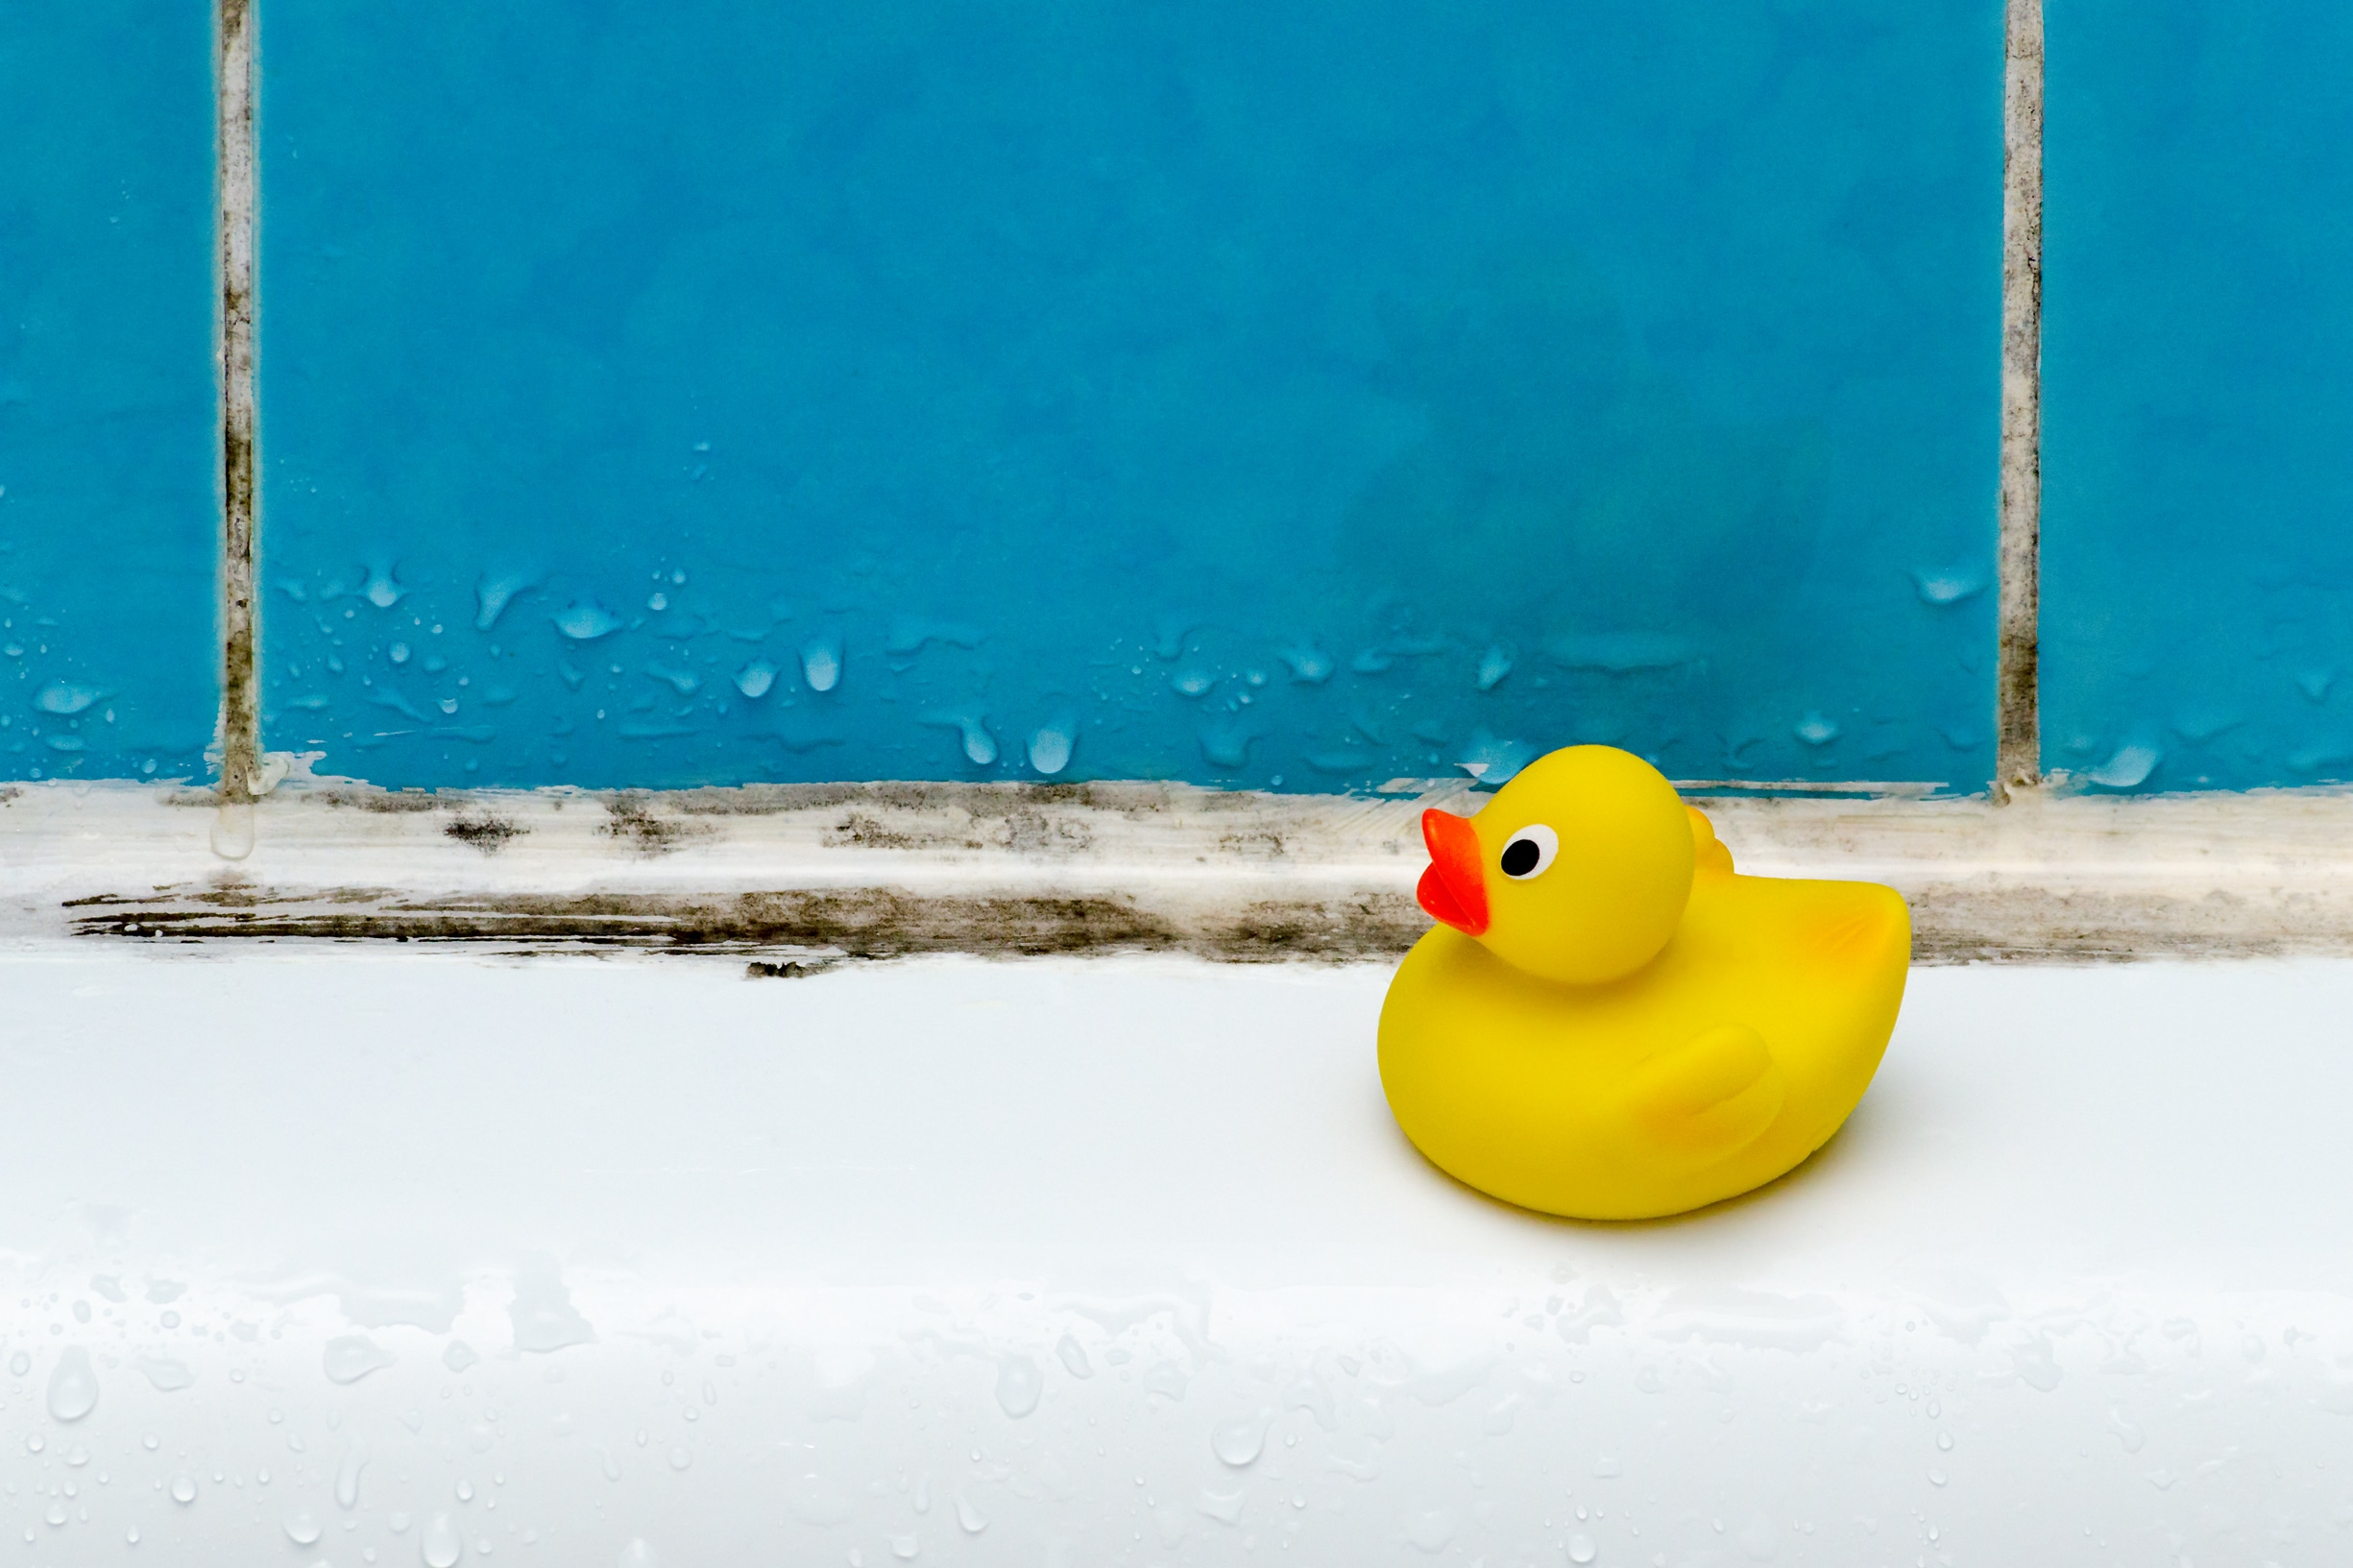 Picture of mouldy tub with a rubber duck toy